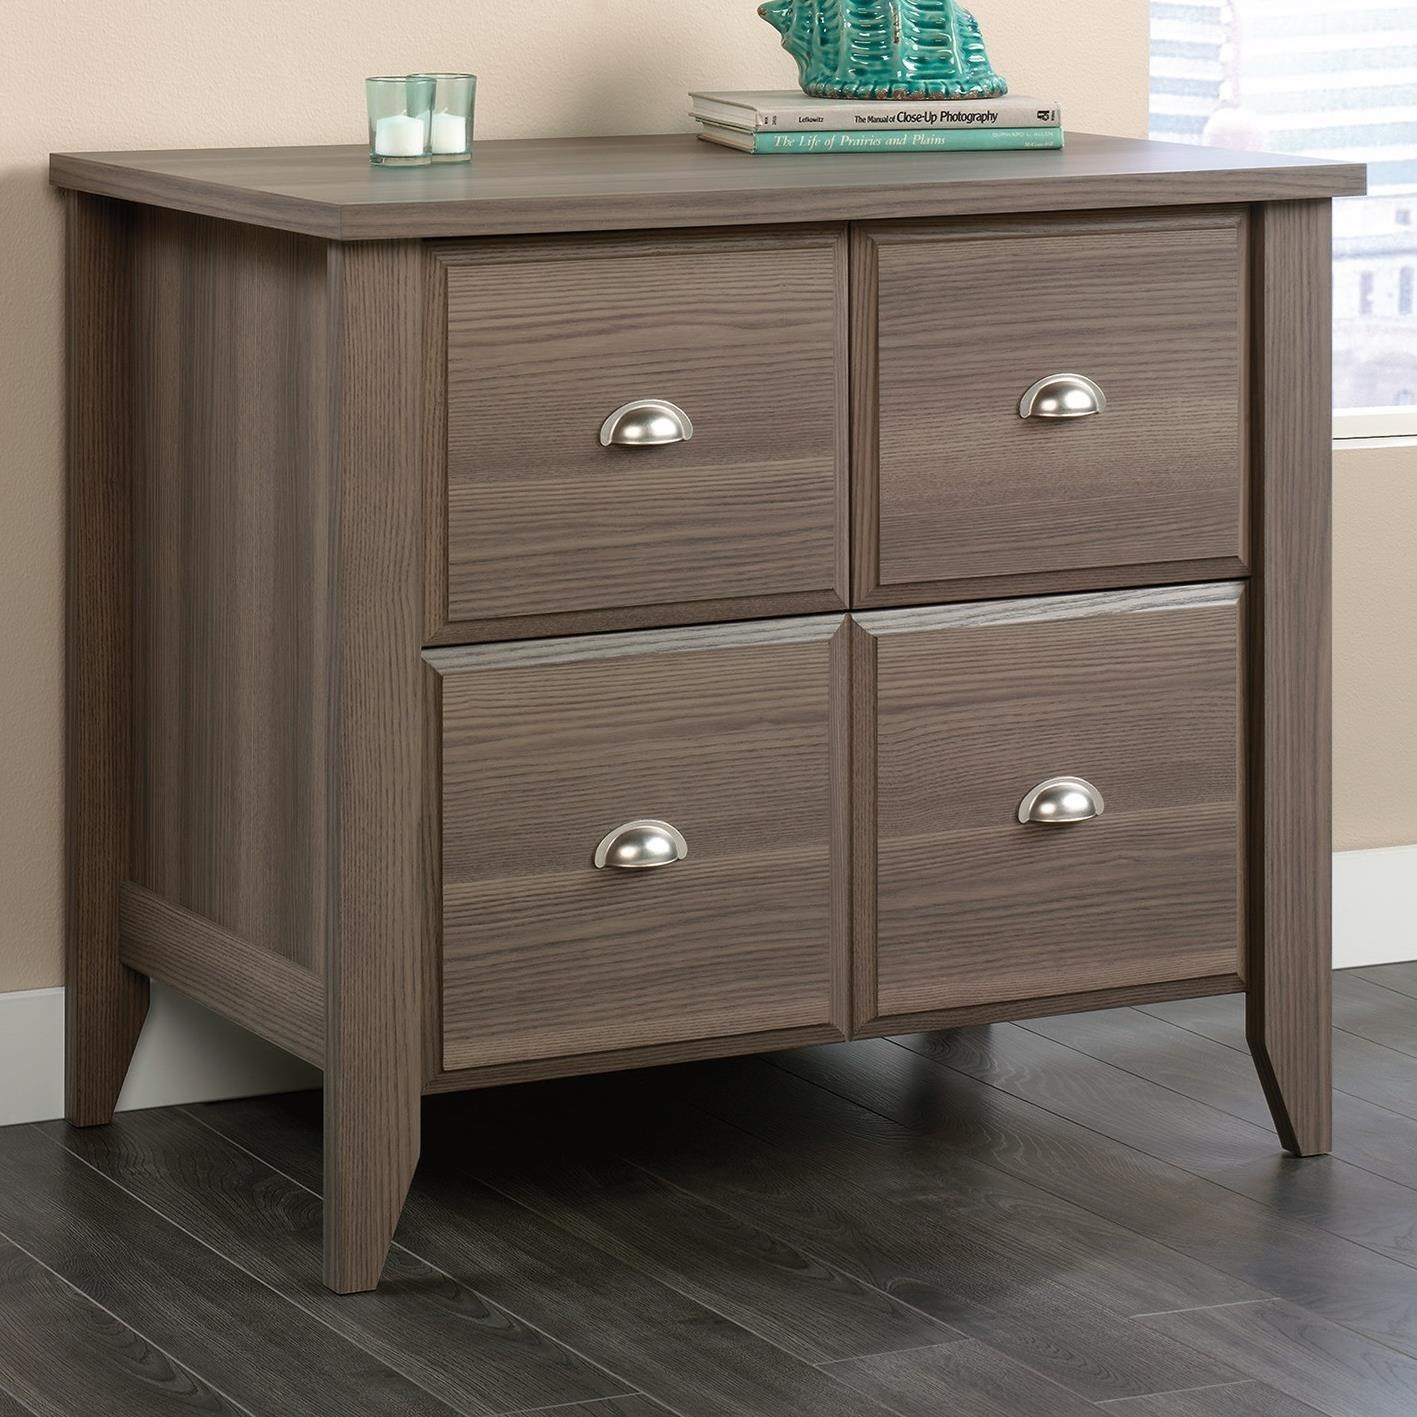 Charmant Sauder Shoal CreekLateral File Cabinet ...